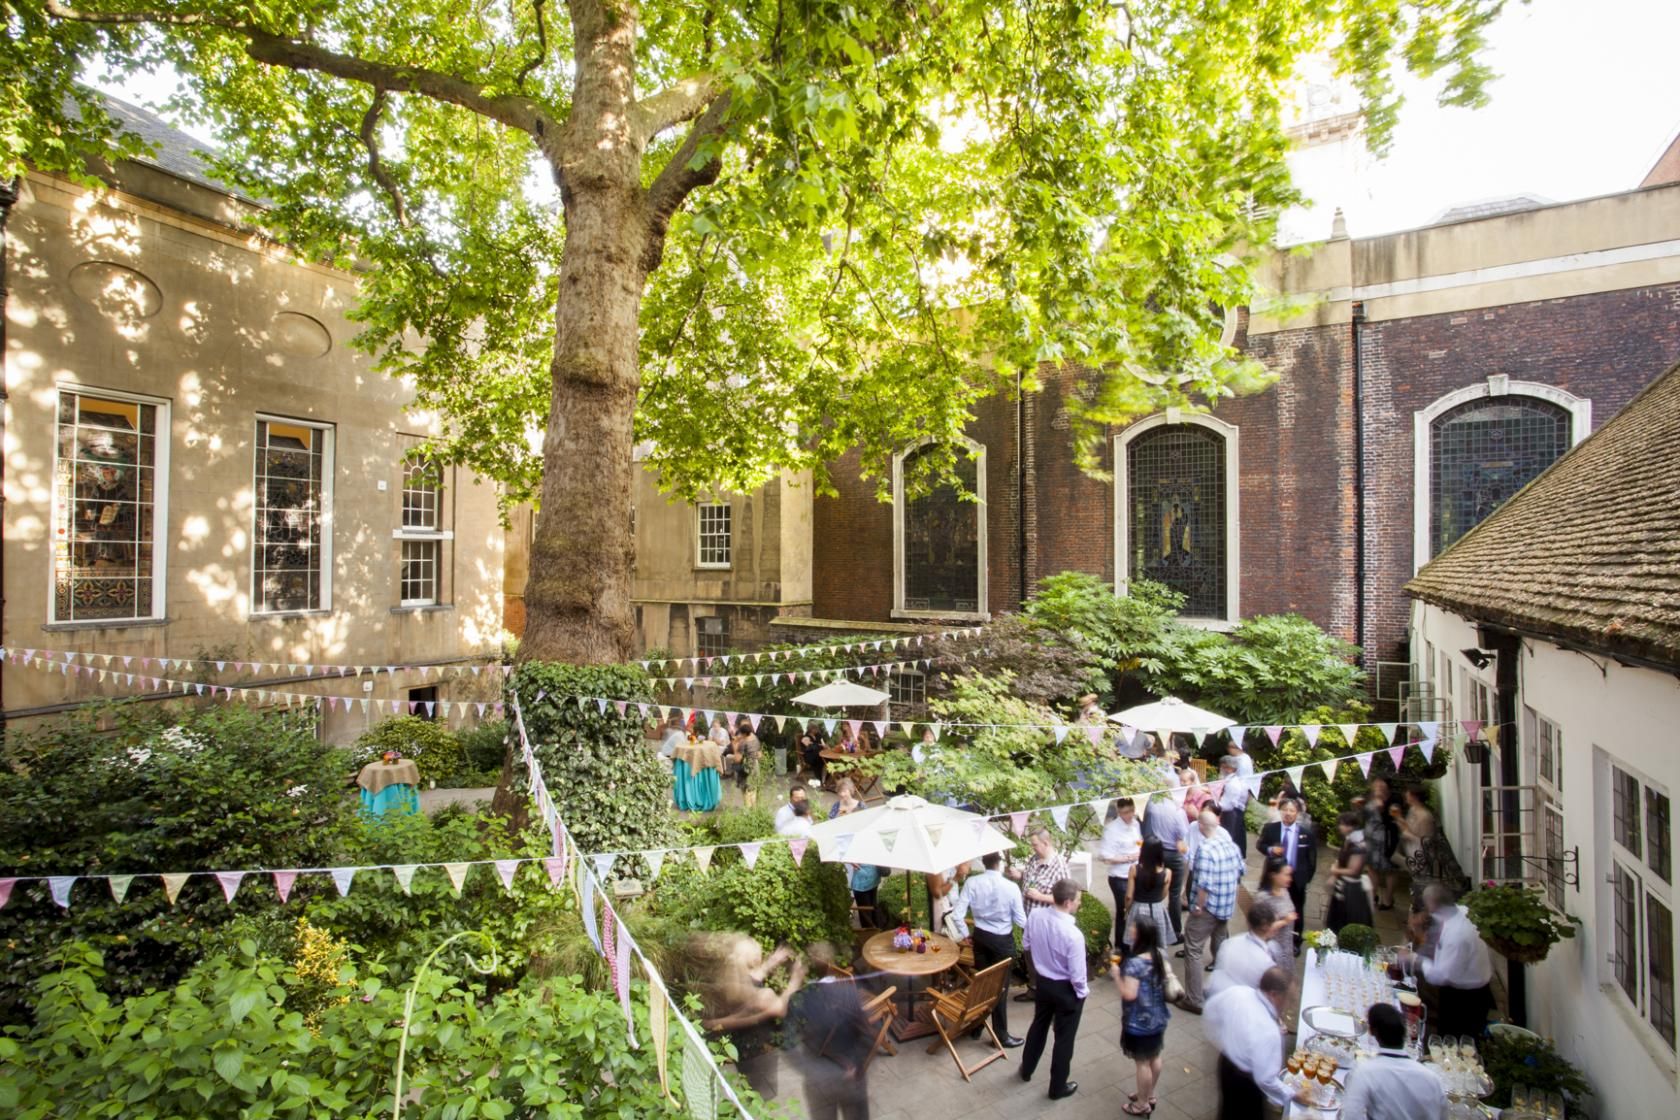 Stationers Hall boasts a secluded private garden – a rare treat in central London.